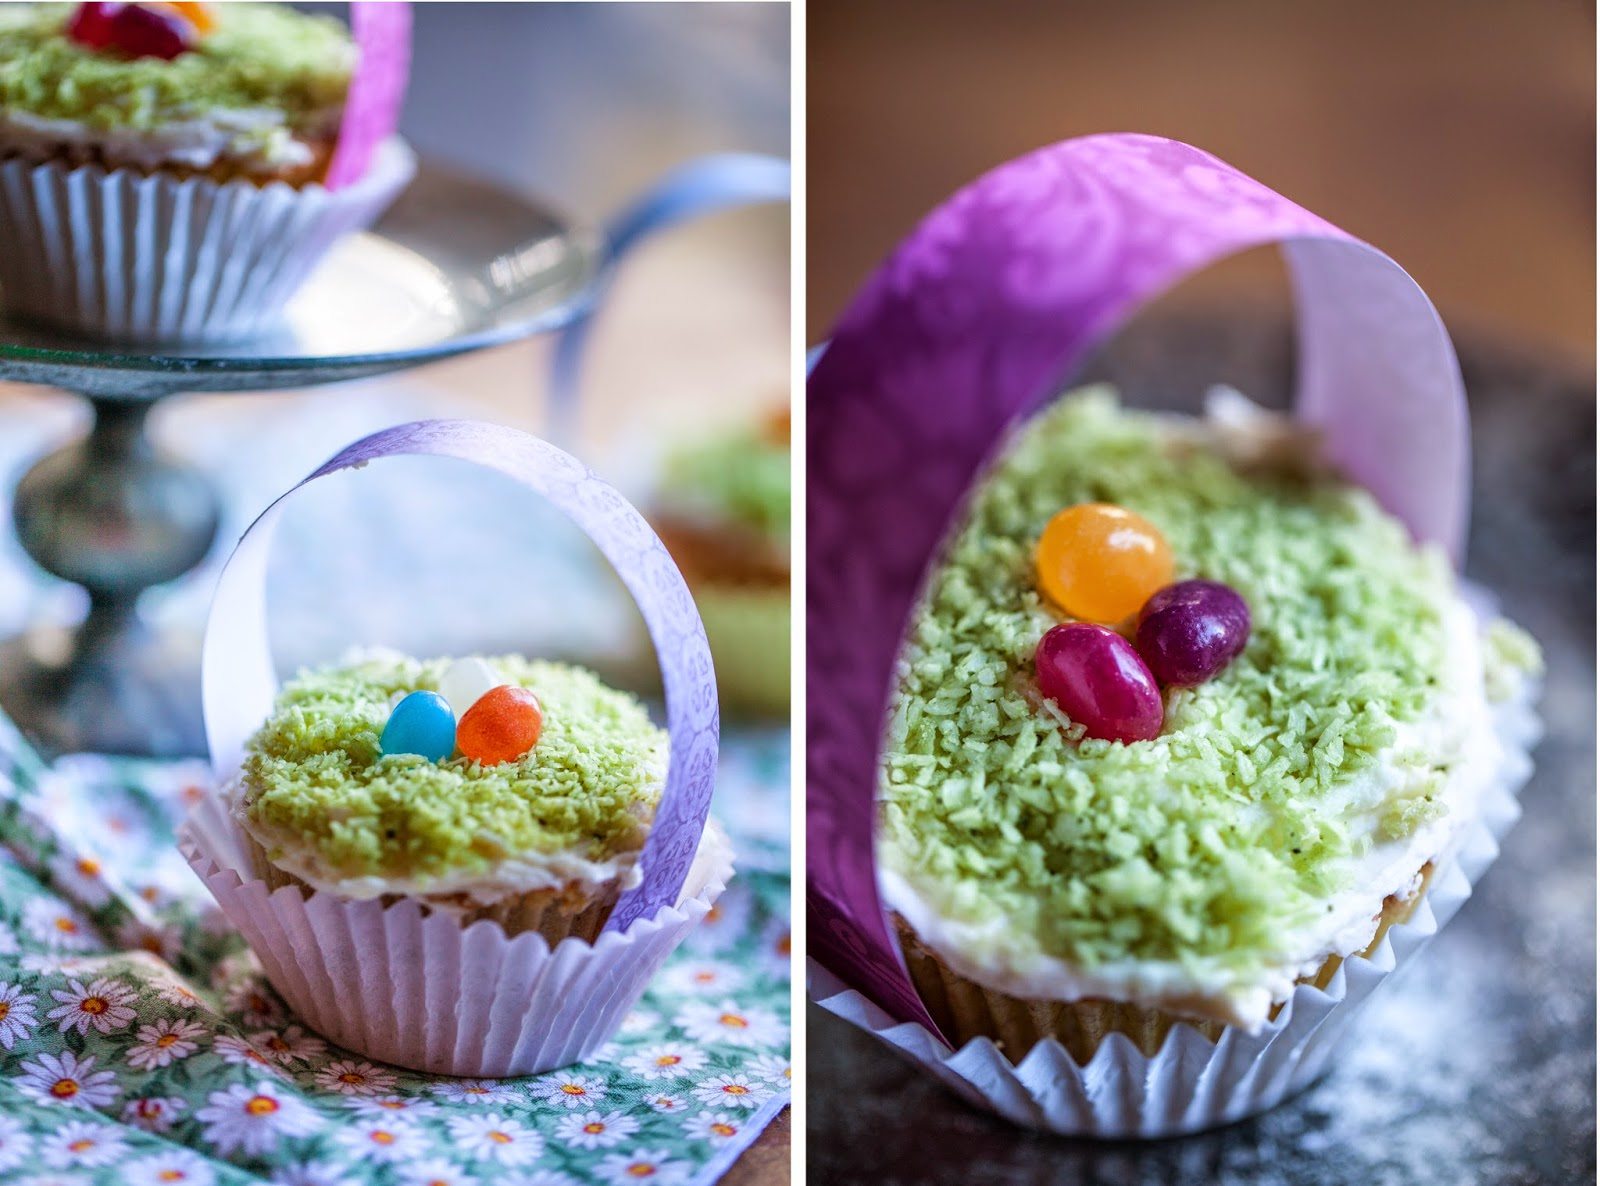 Naturally colored Easter cupcakes lemon and coconut with matcha for green